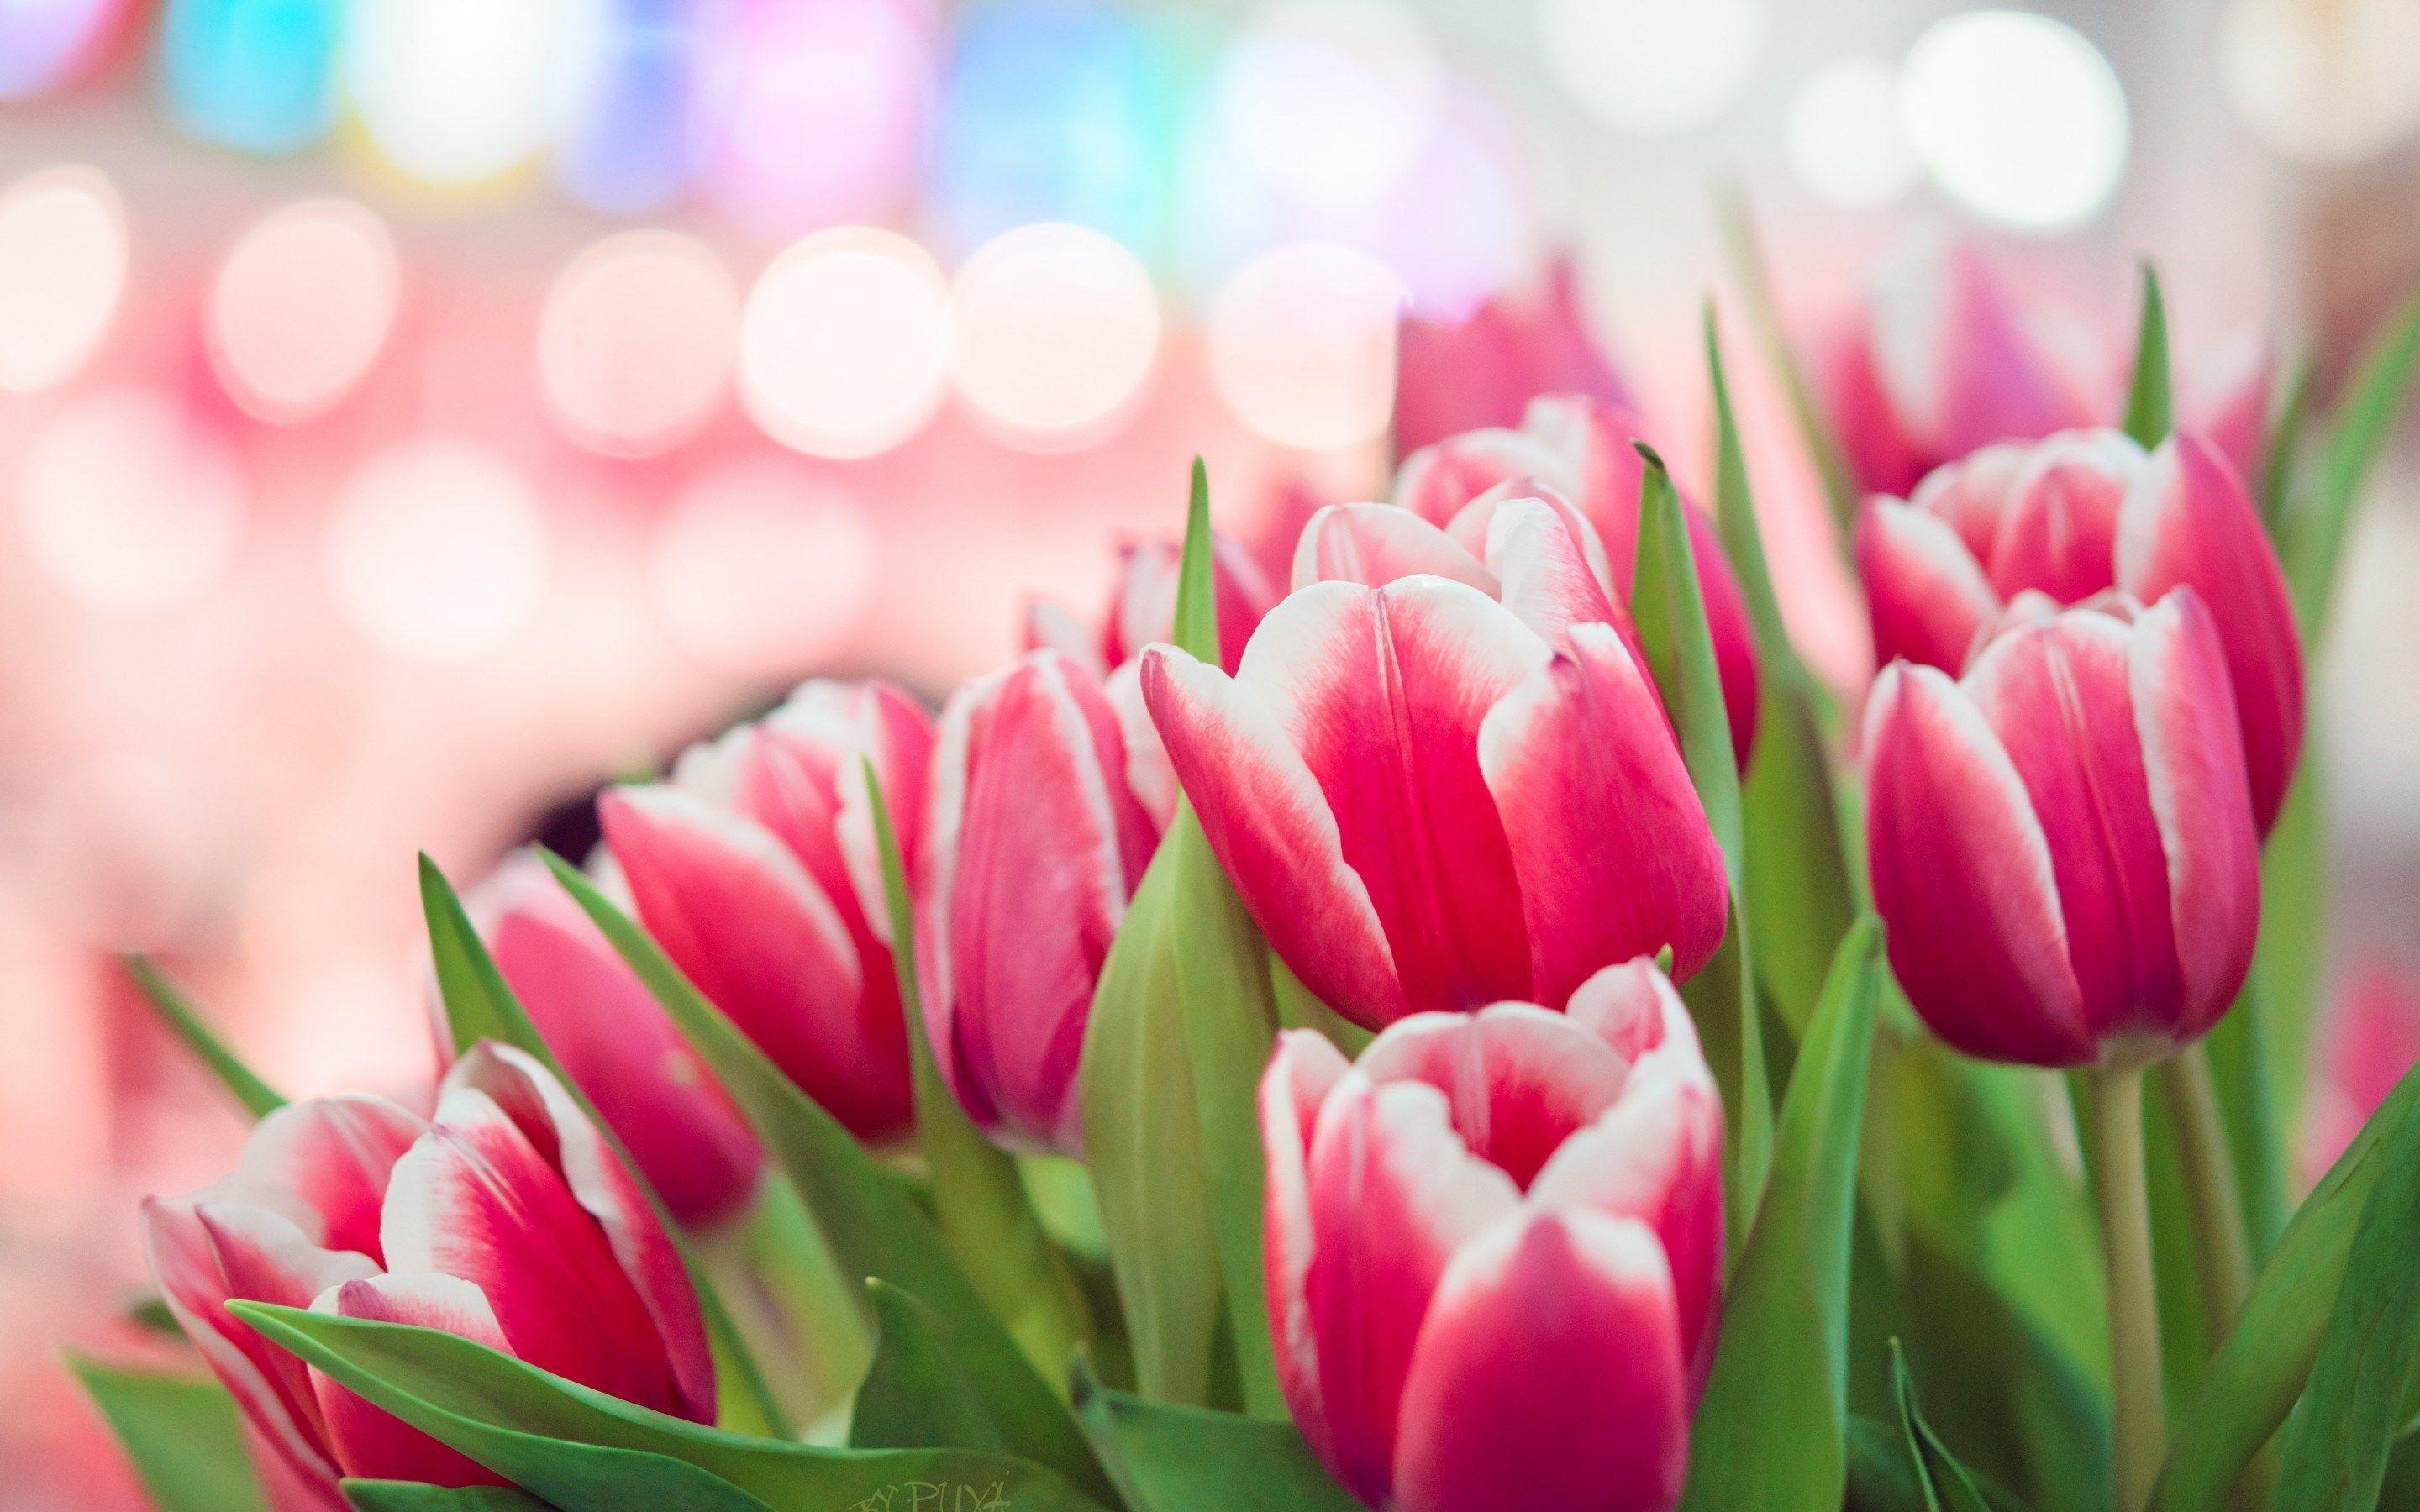 spring city tulips wallpaper - photo #14